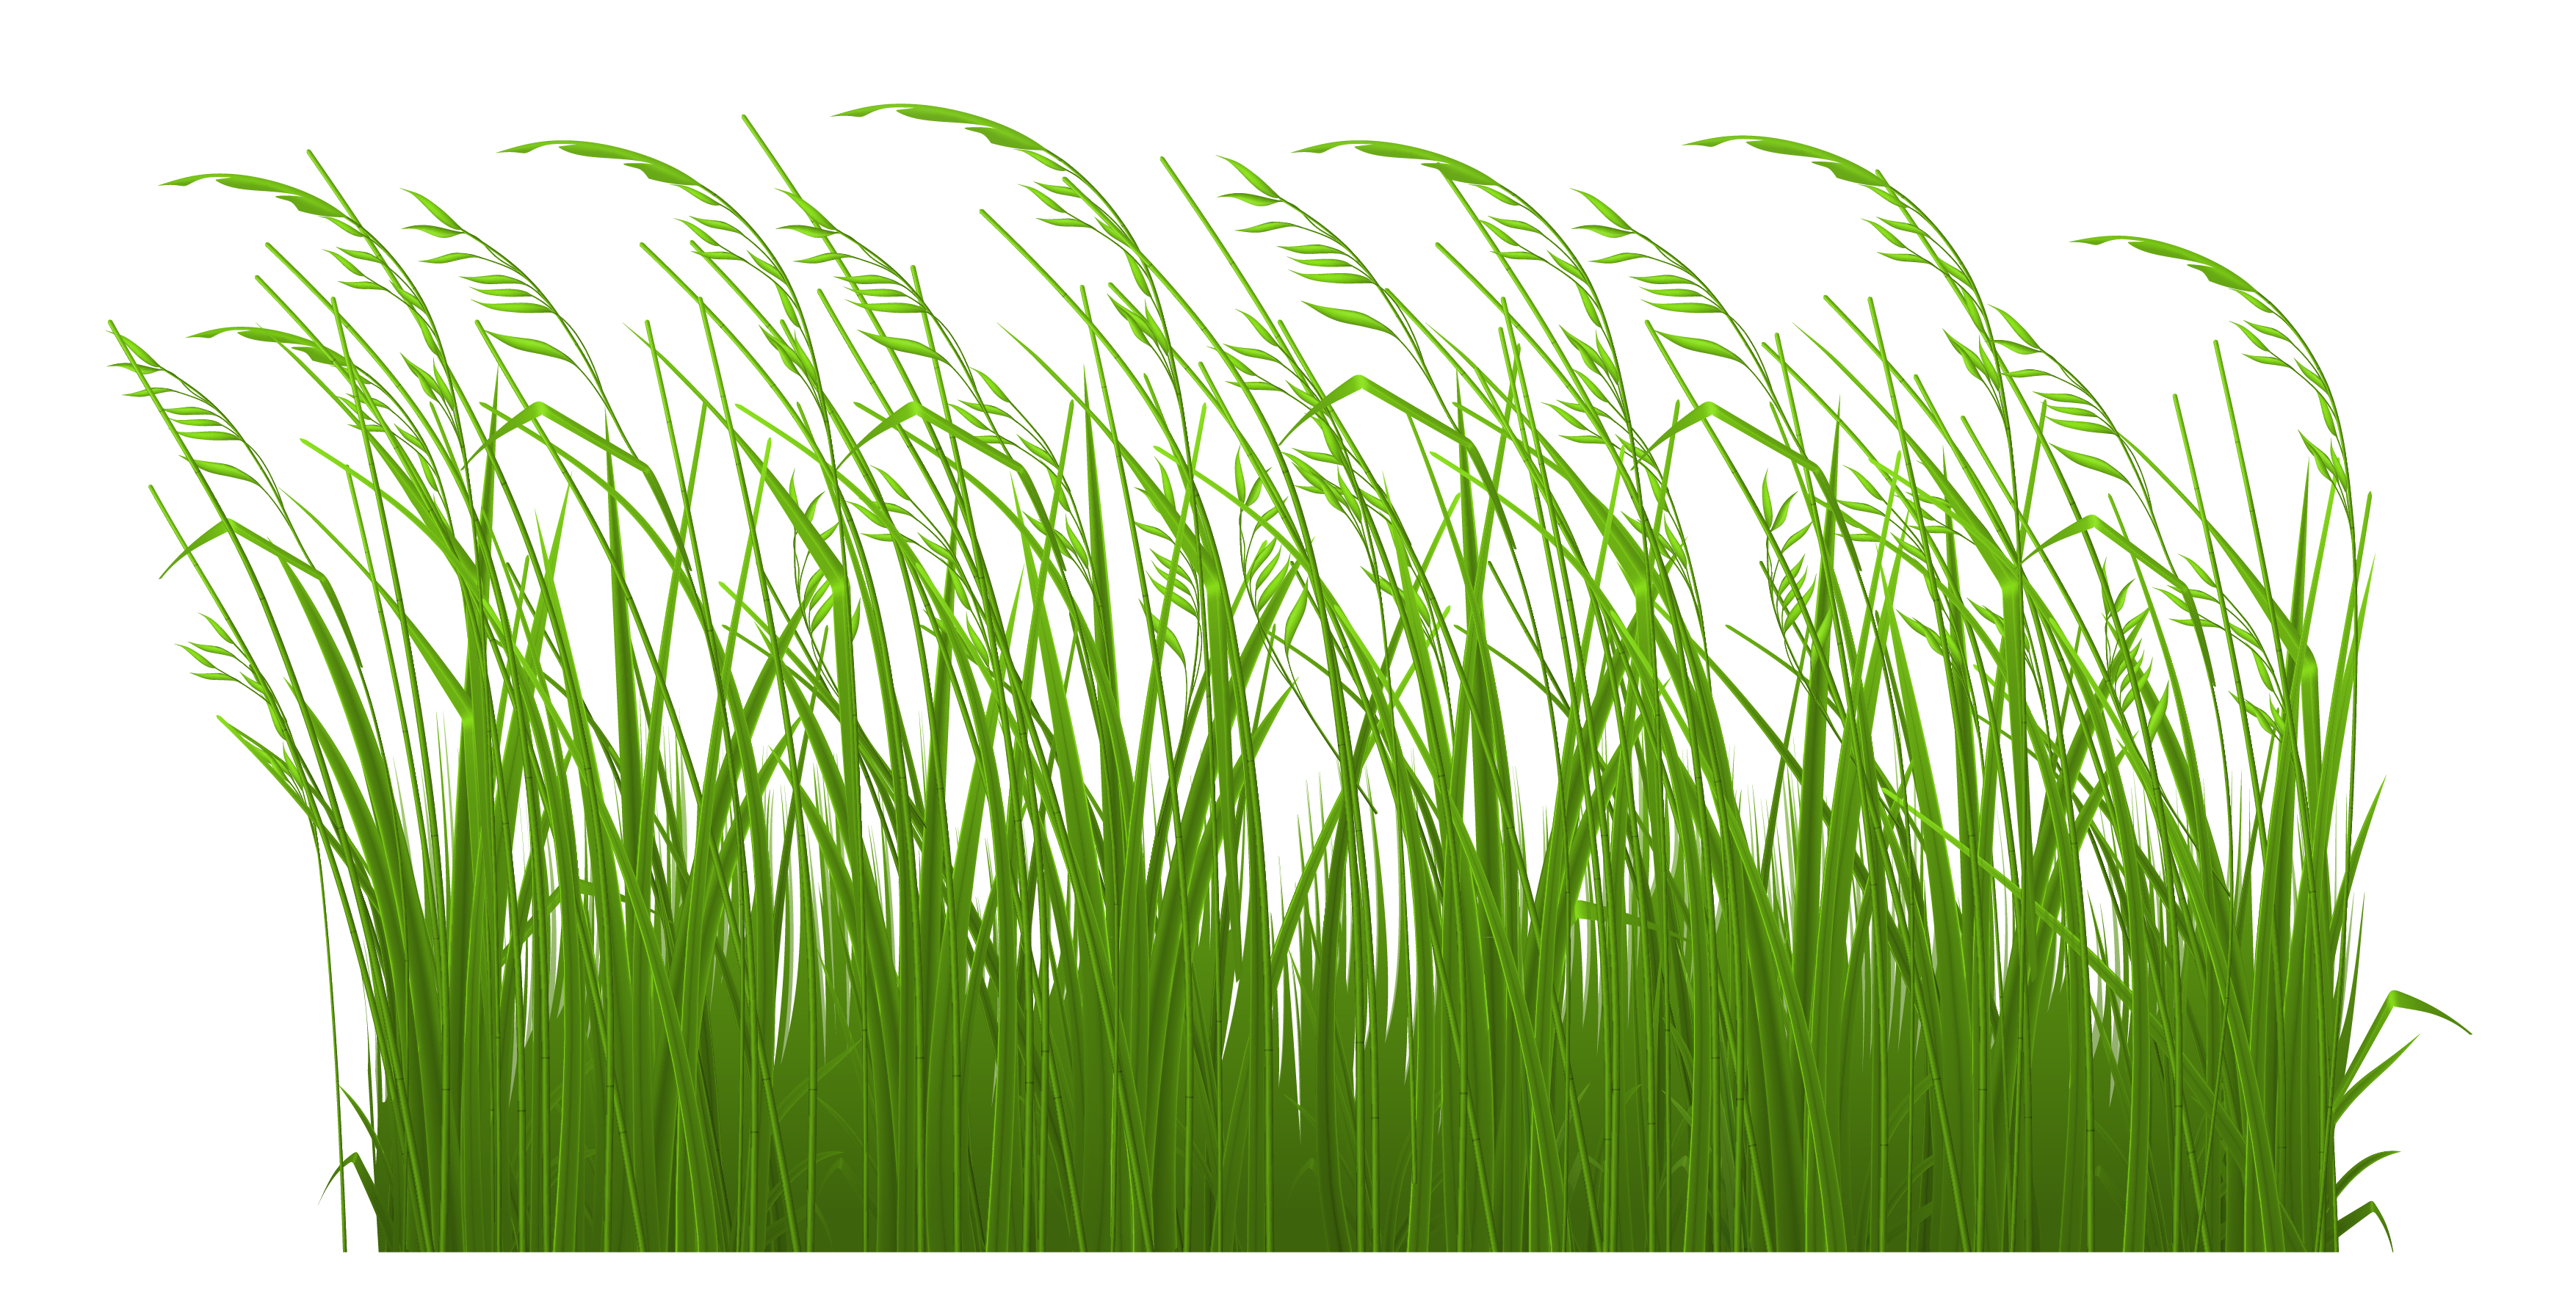 Free grass clip art. Gardening clipart beautiful surroundings